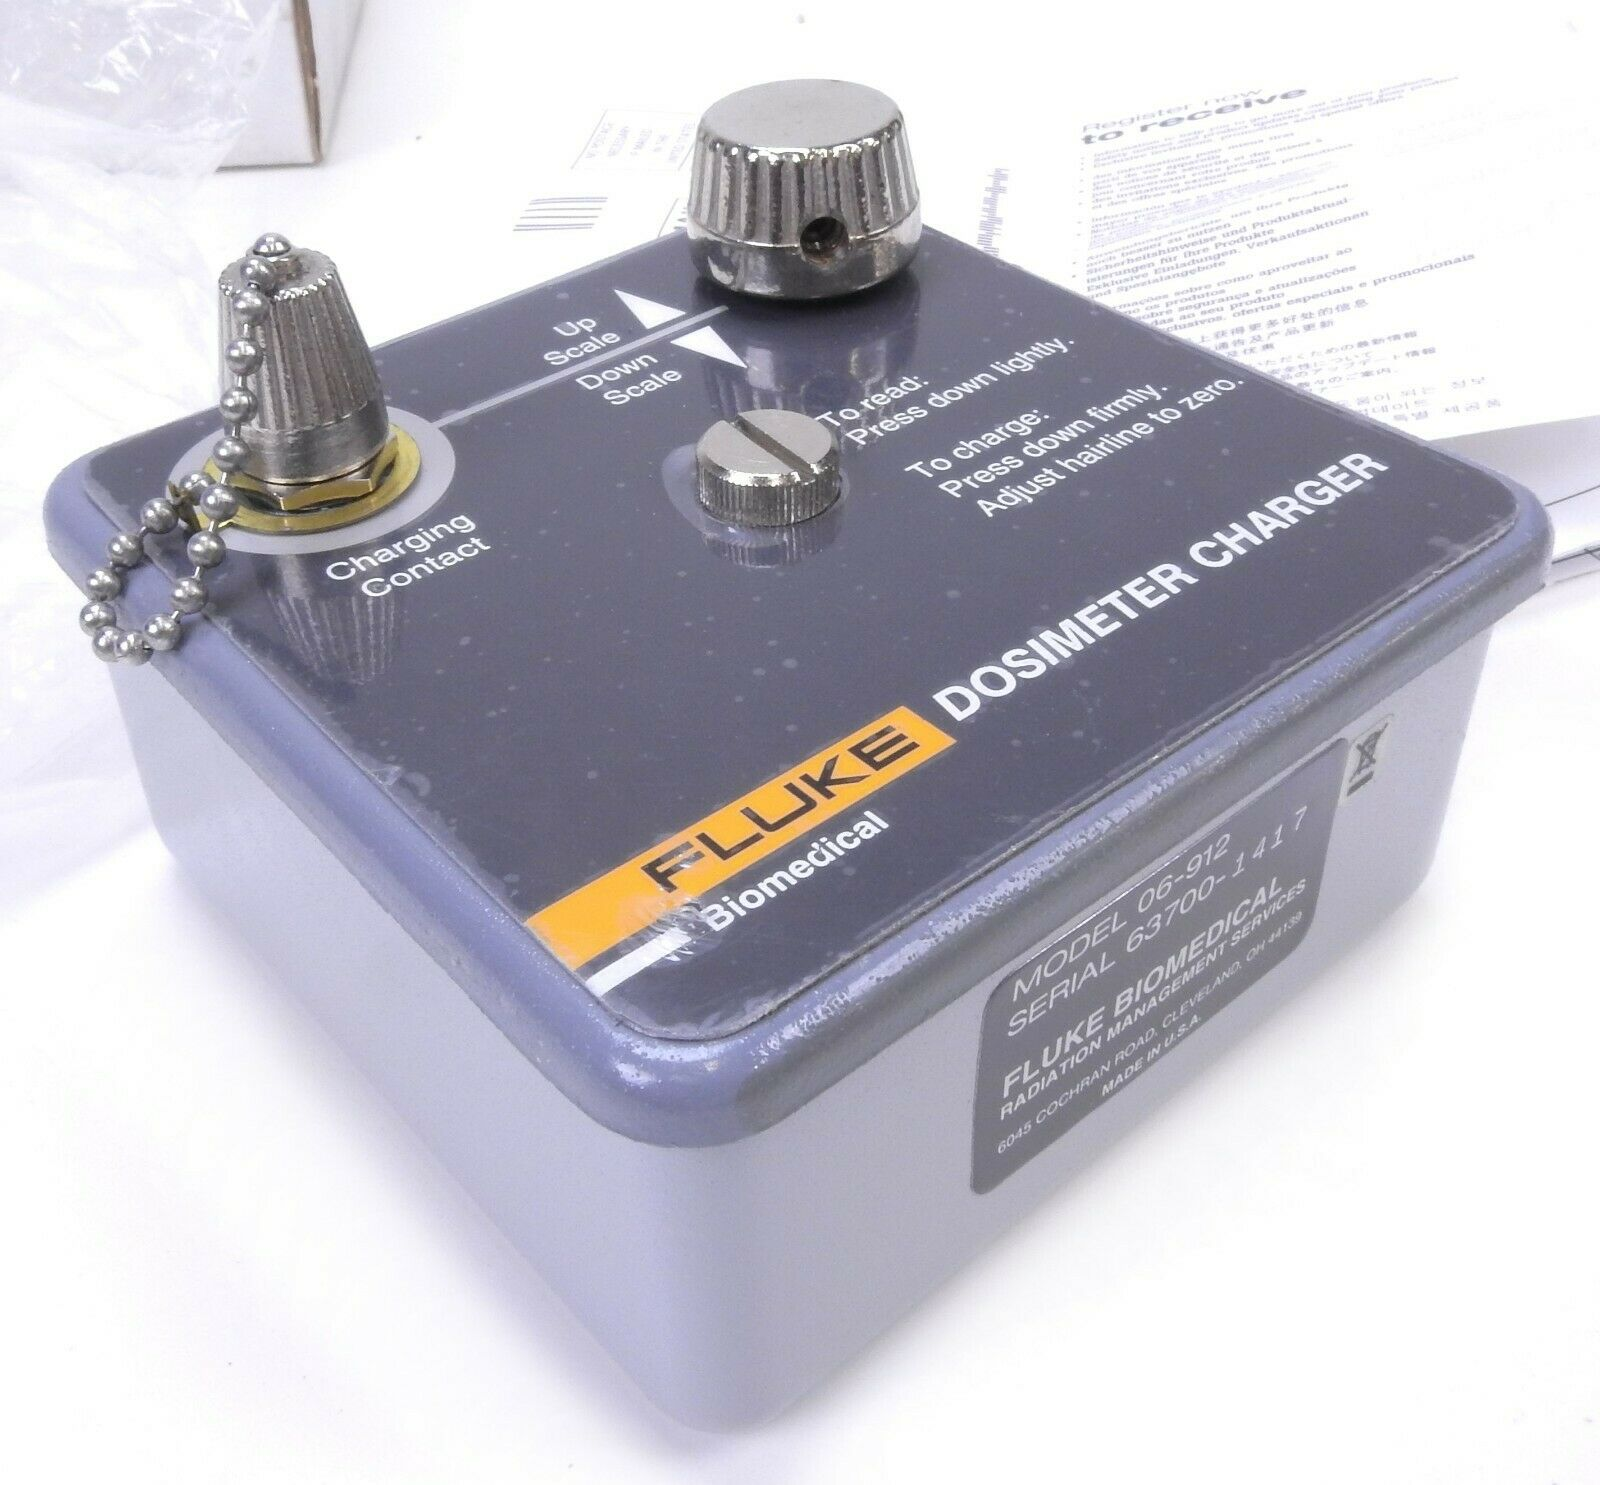 Fluke Biomedical 06-912